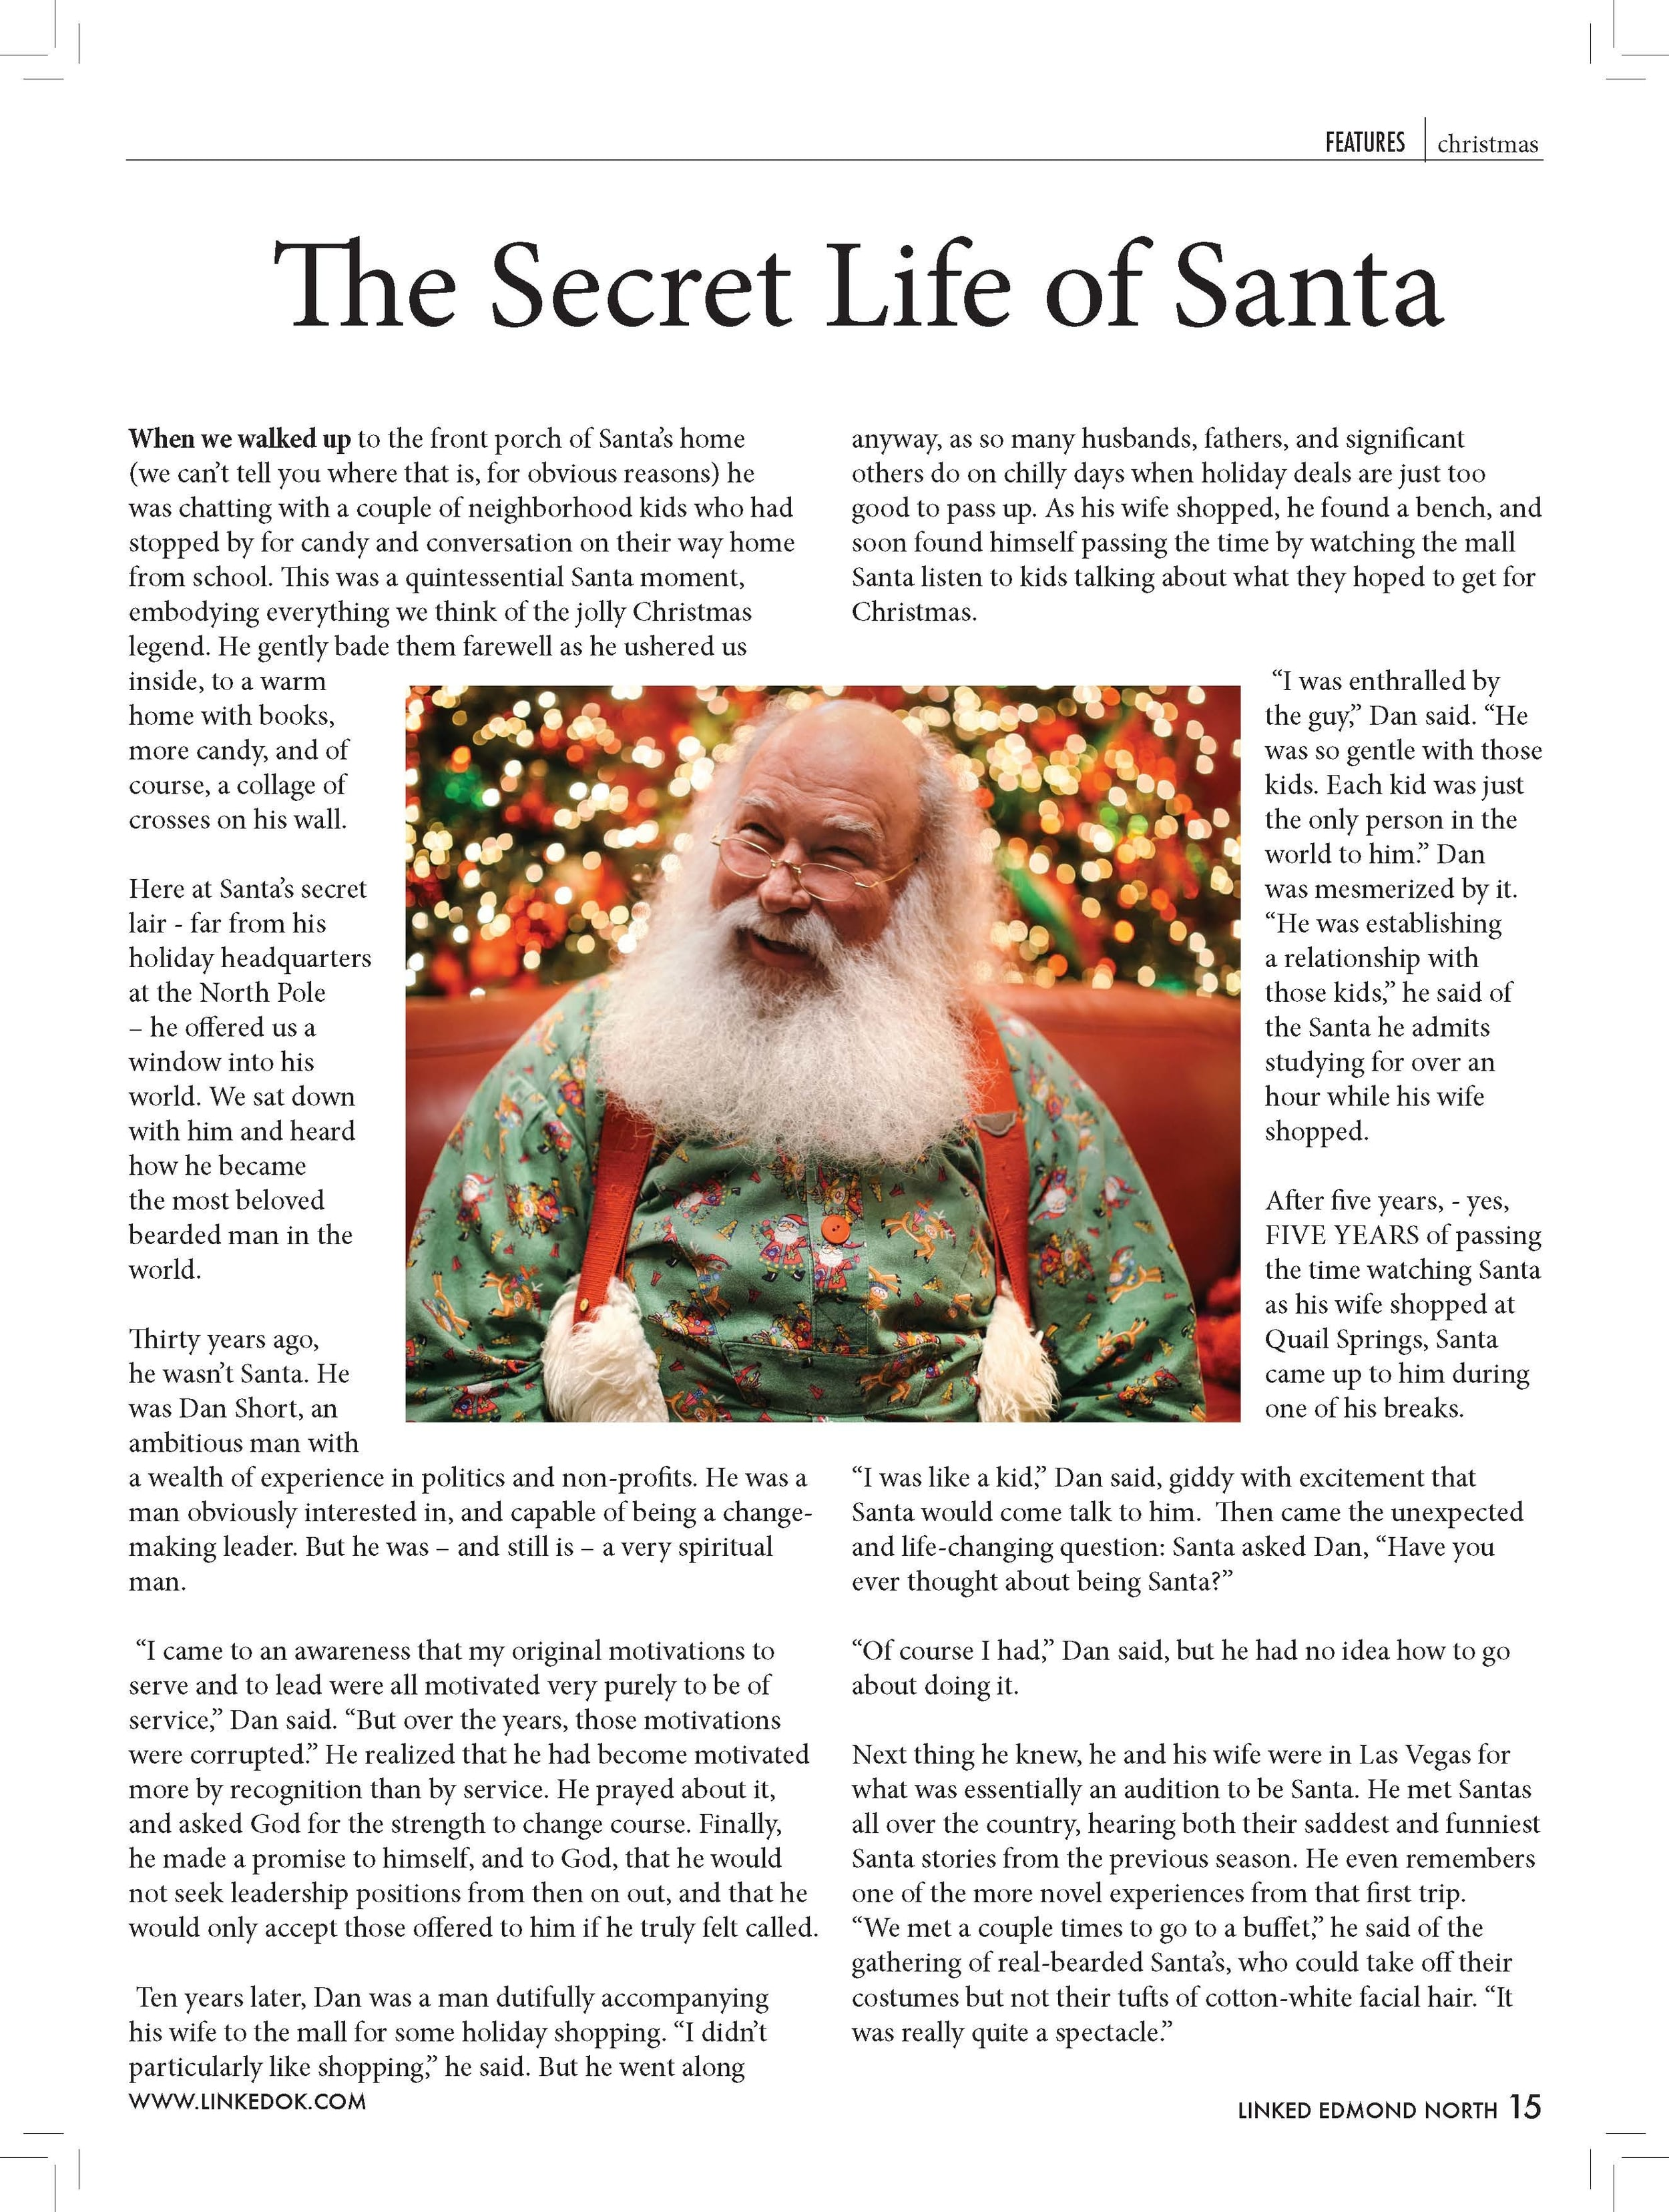 """The Secret Life of Santa  When we walked up to the front porch of Santa's home  (we can't tell you where that is, for obvious reasons) he  was chatting with a couple of neighborhood kids who had  stopped by for candy and conversation on their way home  from school. This was a quintessential Santa moment,  embodying everything we think of the jolly Christmas  legend. He gently bade them farewell as he ushered us  inside, to a warm  home with books,  more candy, and of  course, a collage of  crosses on his wall.  Here at Santa's secret  lair - far from his  holiday headquarters  at the North Pole  – he offered us a  window into his  world. We sat down  with him and heard  how he became  the most beloved  bearded man in the  world.  Thirty years ago,  he wasn't Santa. He  was Dan Short, an  ambitious man with  a wealth of experience in politics and non-profits. He was a  man obviously interested in, and capable of being a changemaking  leader. But he was – and still is – a very spiritual  man.  """"I came to an awareness that my original motivations to  serve and to lead were all motivated very purely to be of  service,"""" Dan said. """"But over the years, those motivations  were corrupted."""" He realized that he had become motivated  more by recognition than by service. He prayed about it,  and asked God for the strength to change course. Finally,  he made a promise to himself, and to God, that he would  not seek leadership positions from then on out, and that he  would only accept those offered to him if he truly felt called.  Ten years later, Dan was a man dutifully accompanying  his wife to the mall for some holiday shopping. """"I didn't  particularly like shopping,"""" he said. But he went along  anyway, as so many husbands, fathers, and significant  others do on chilly days when holiday deals are just too  good to pass up. As his wife shopped, he found a bench, and  soon found himself passing the time by watching the mall  Santa listen to kids talking about what they hoped to g"""